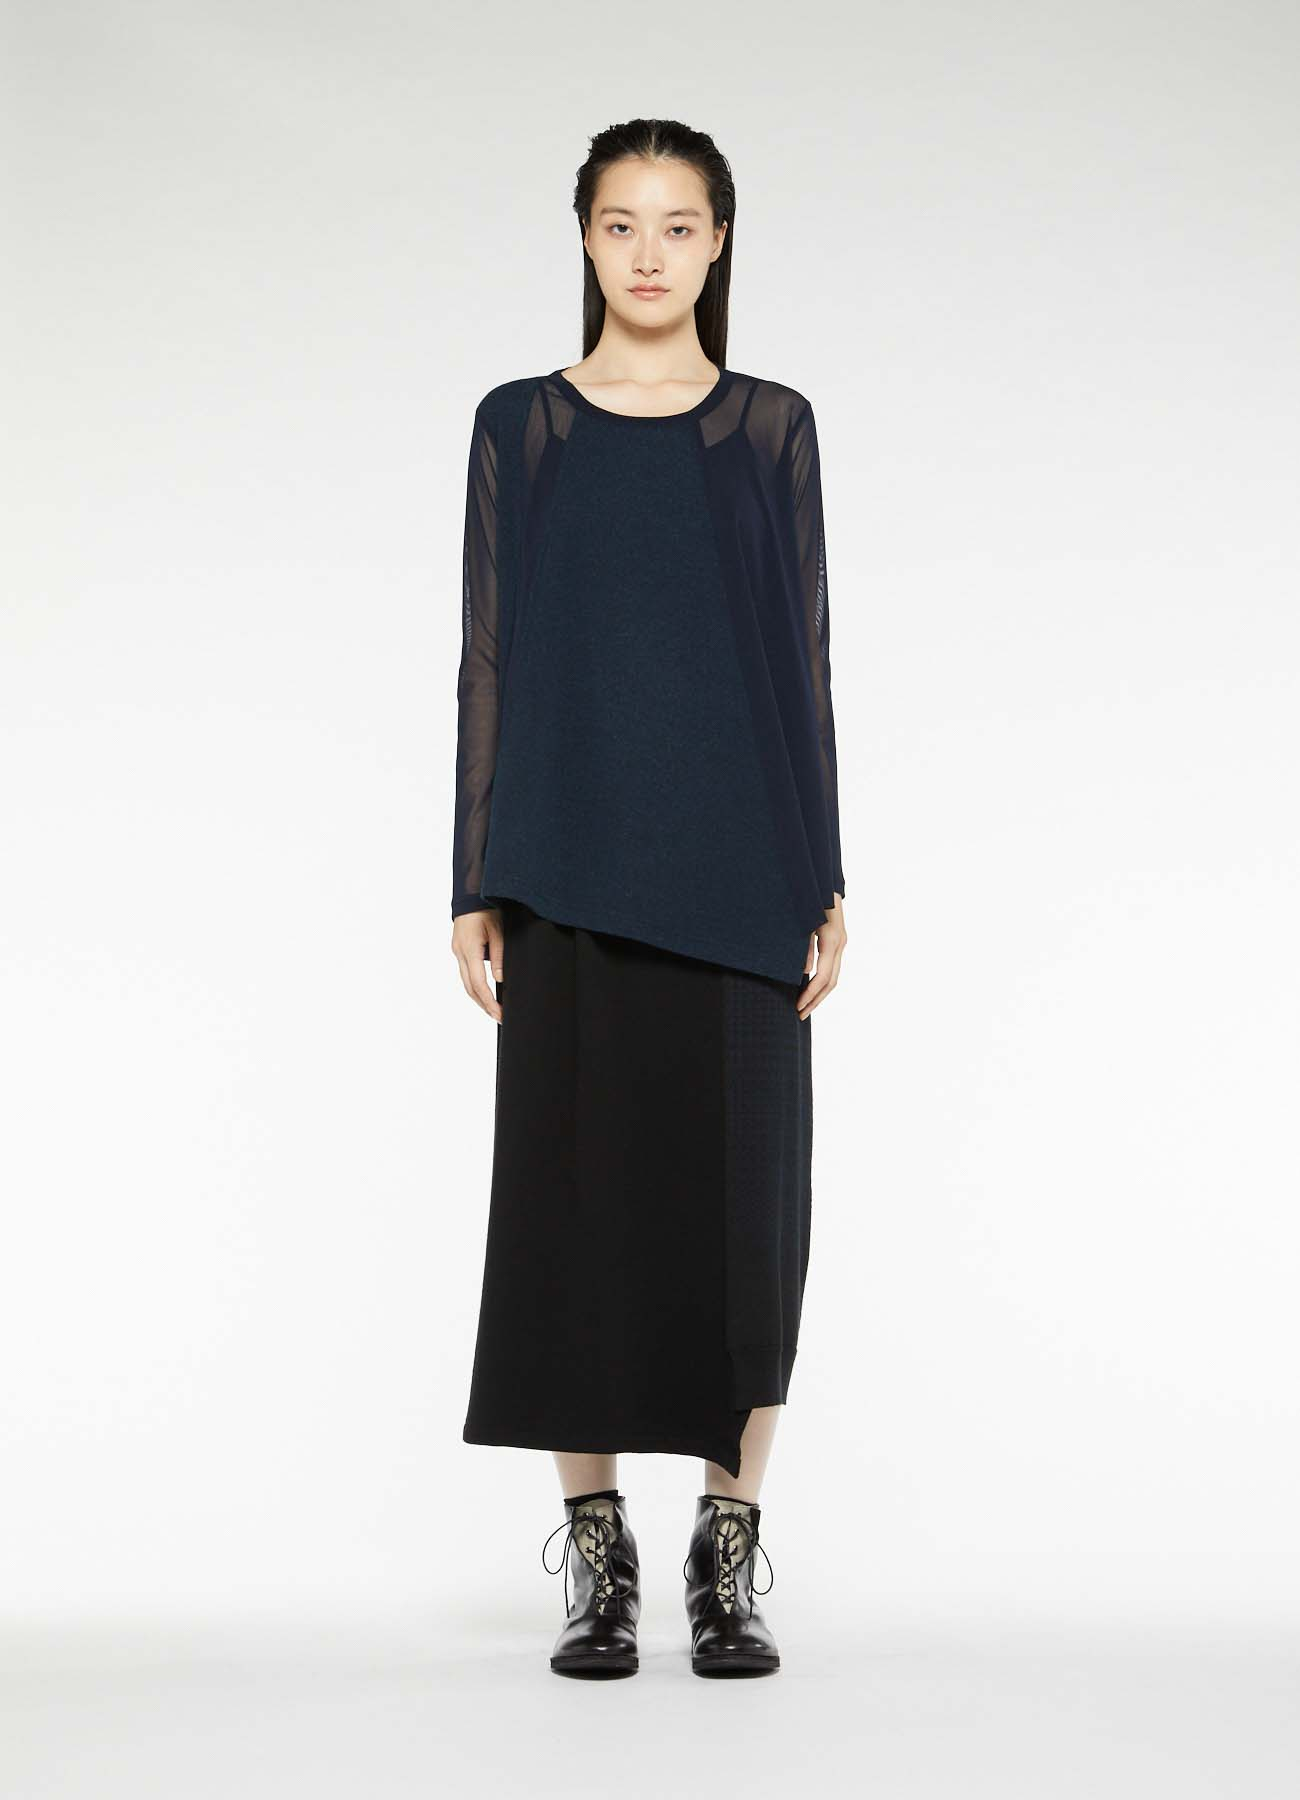 POLYESTER TULLE x WOOL NEEDLE PUNCH HEM FLARE LONG SLEEVE T-SHIRT